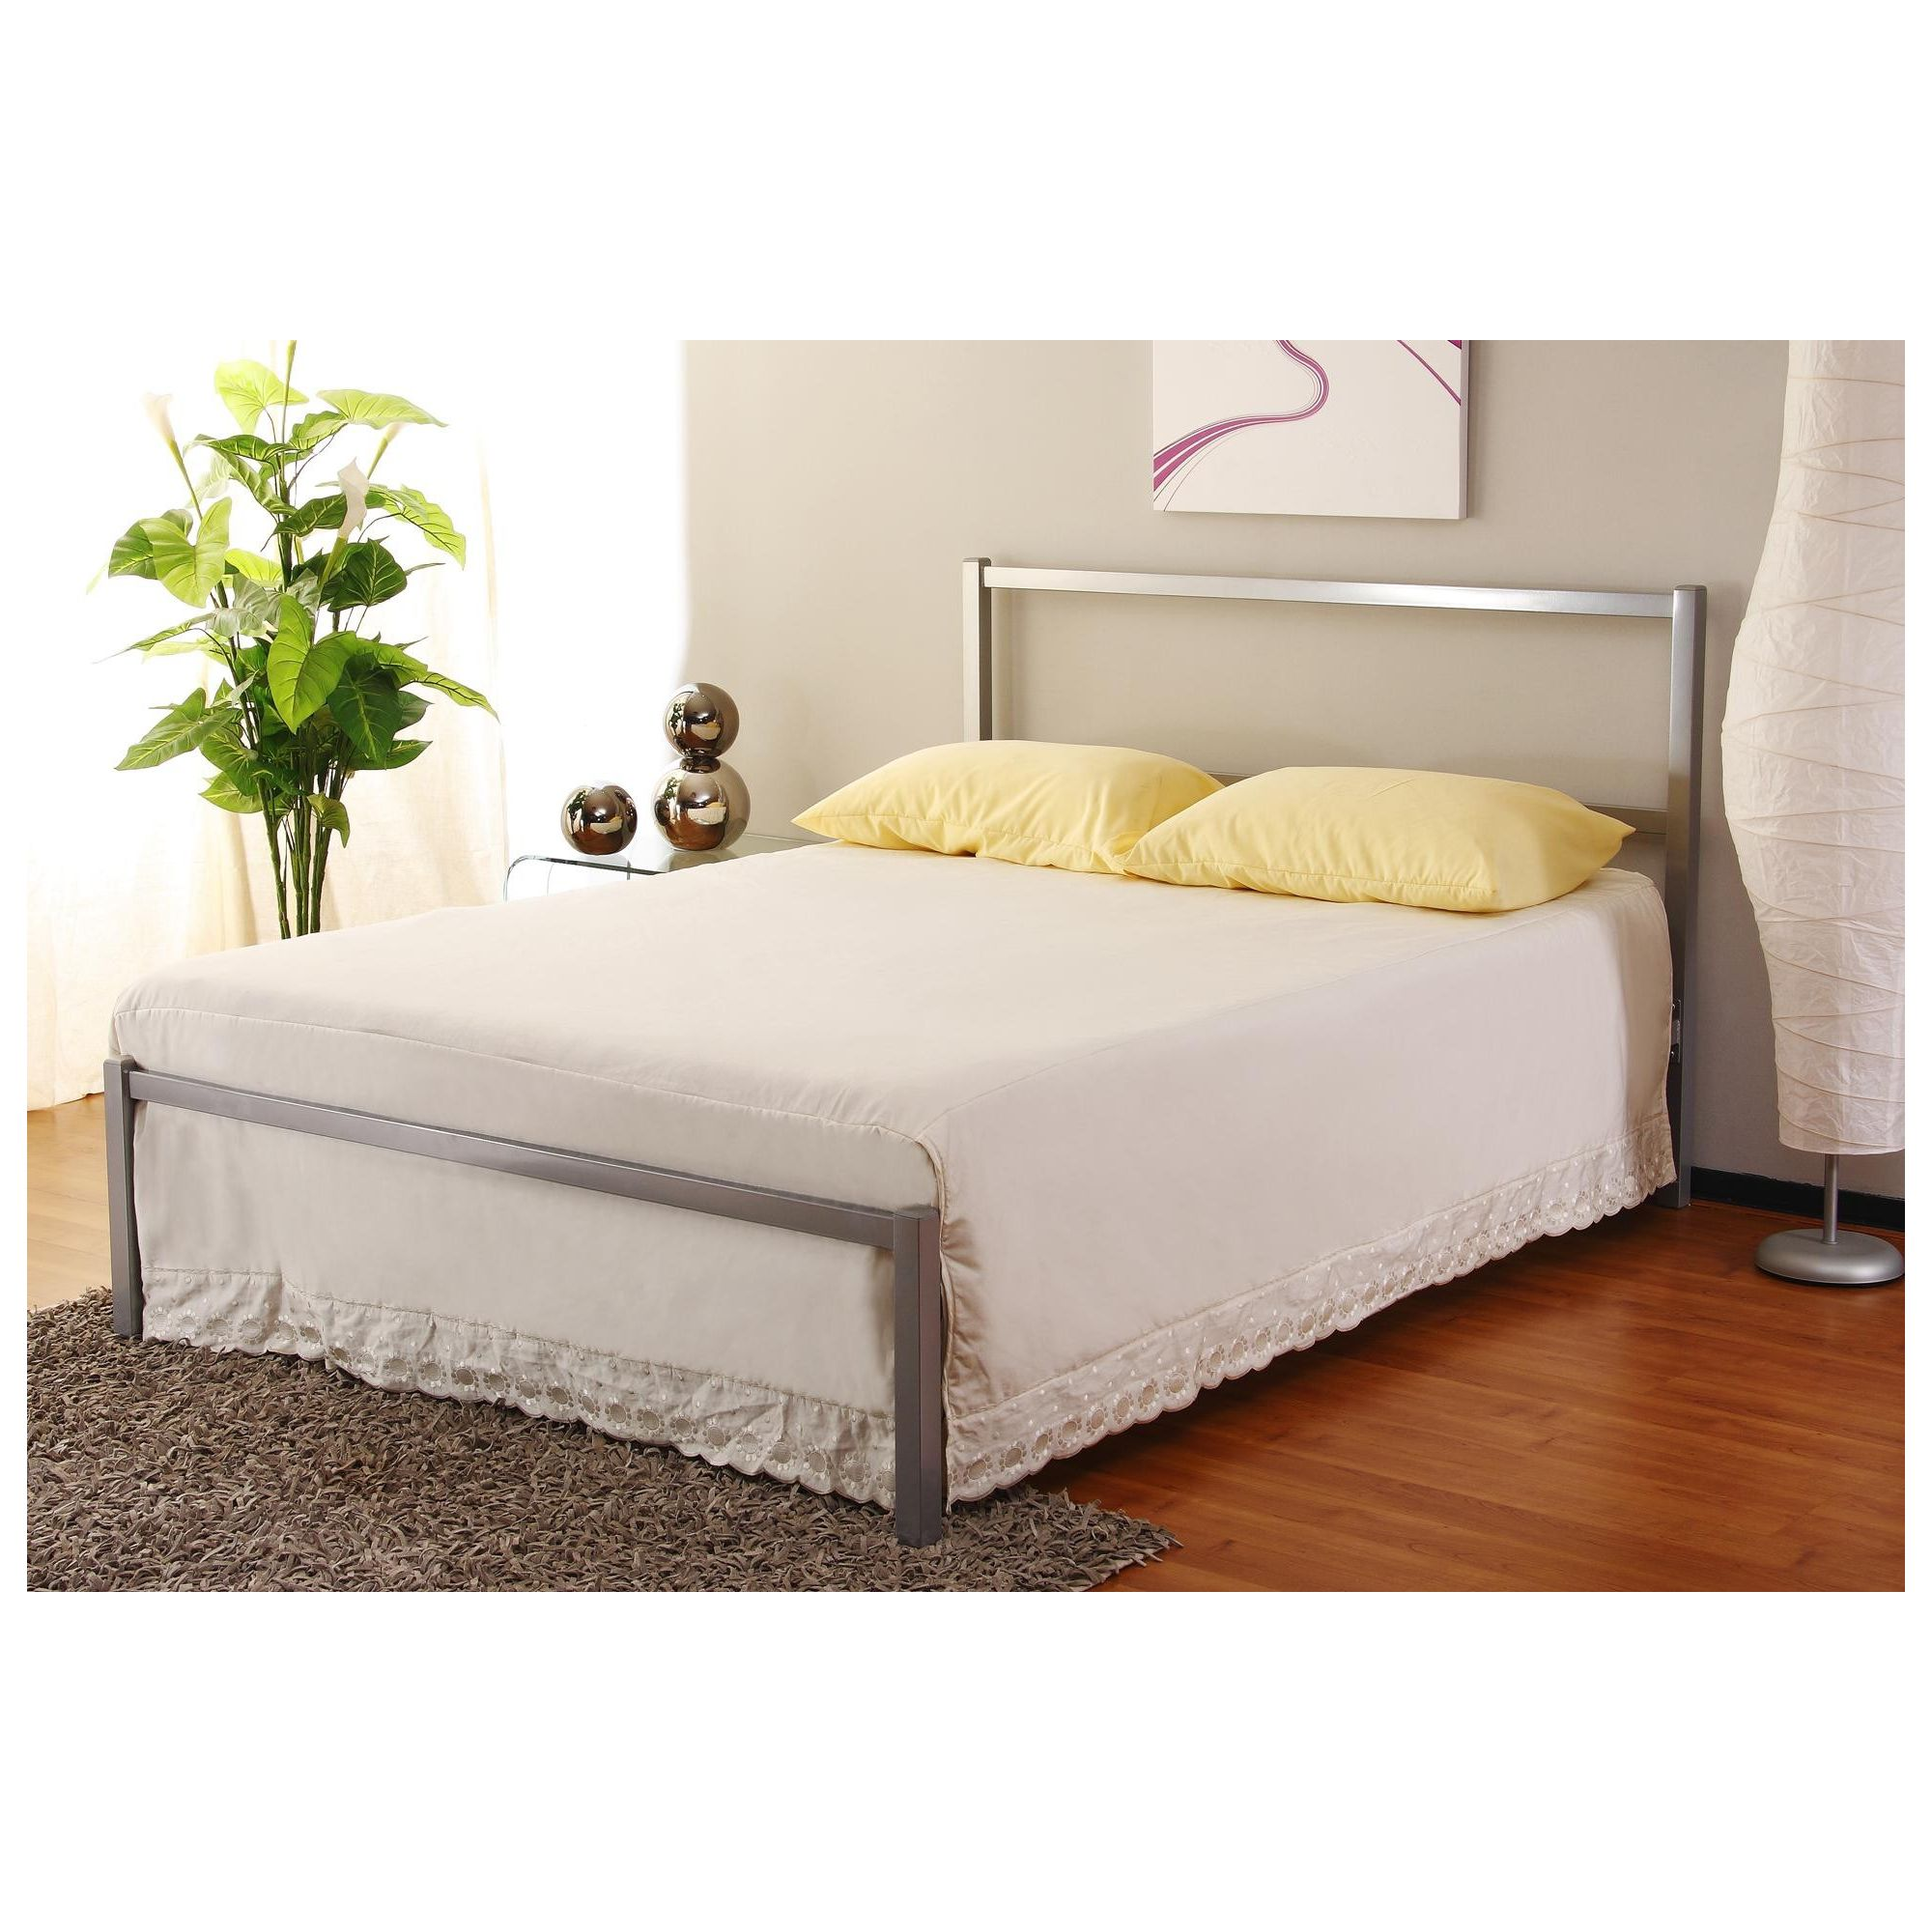 Cheap king size beds platforms for beds trends including for Cheap king size divan